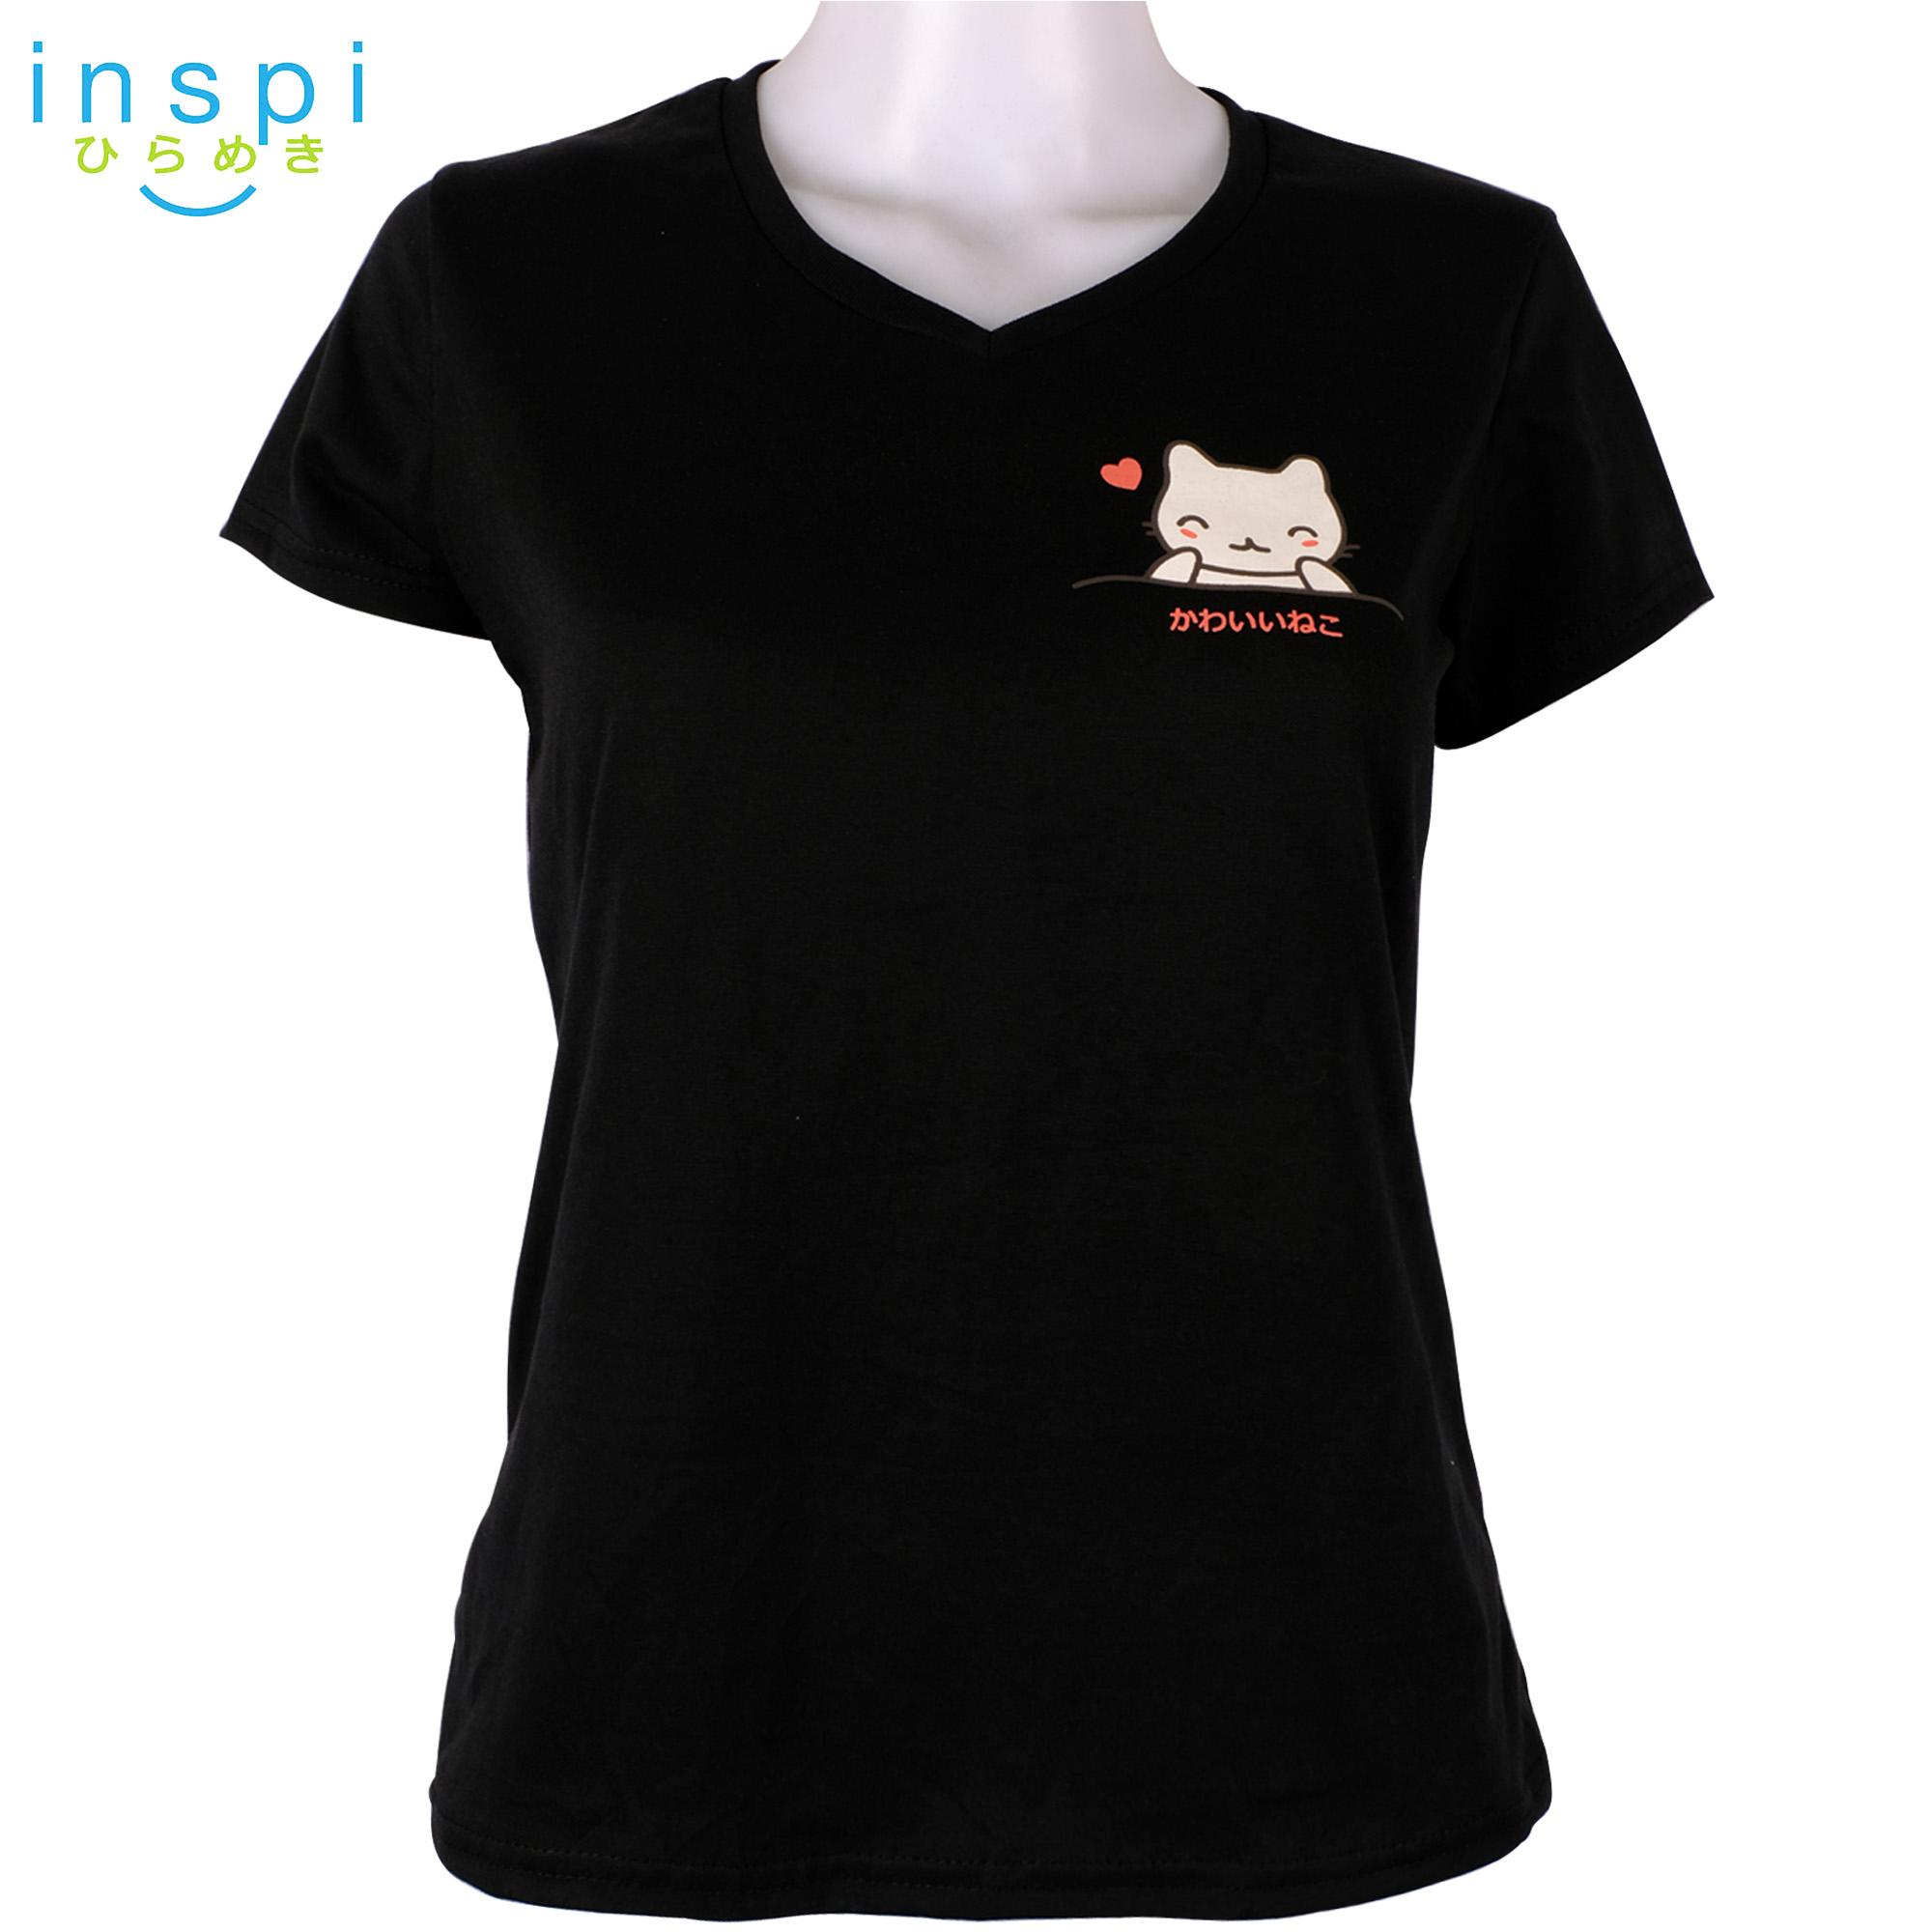 64d0951a76 INSPI Tees Ladies Semi Fit Cat in a Pocket (Black) tshirt printed graphic  tee